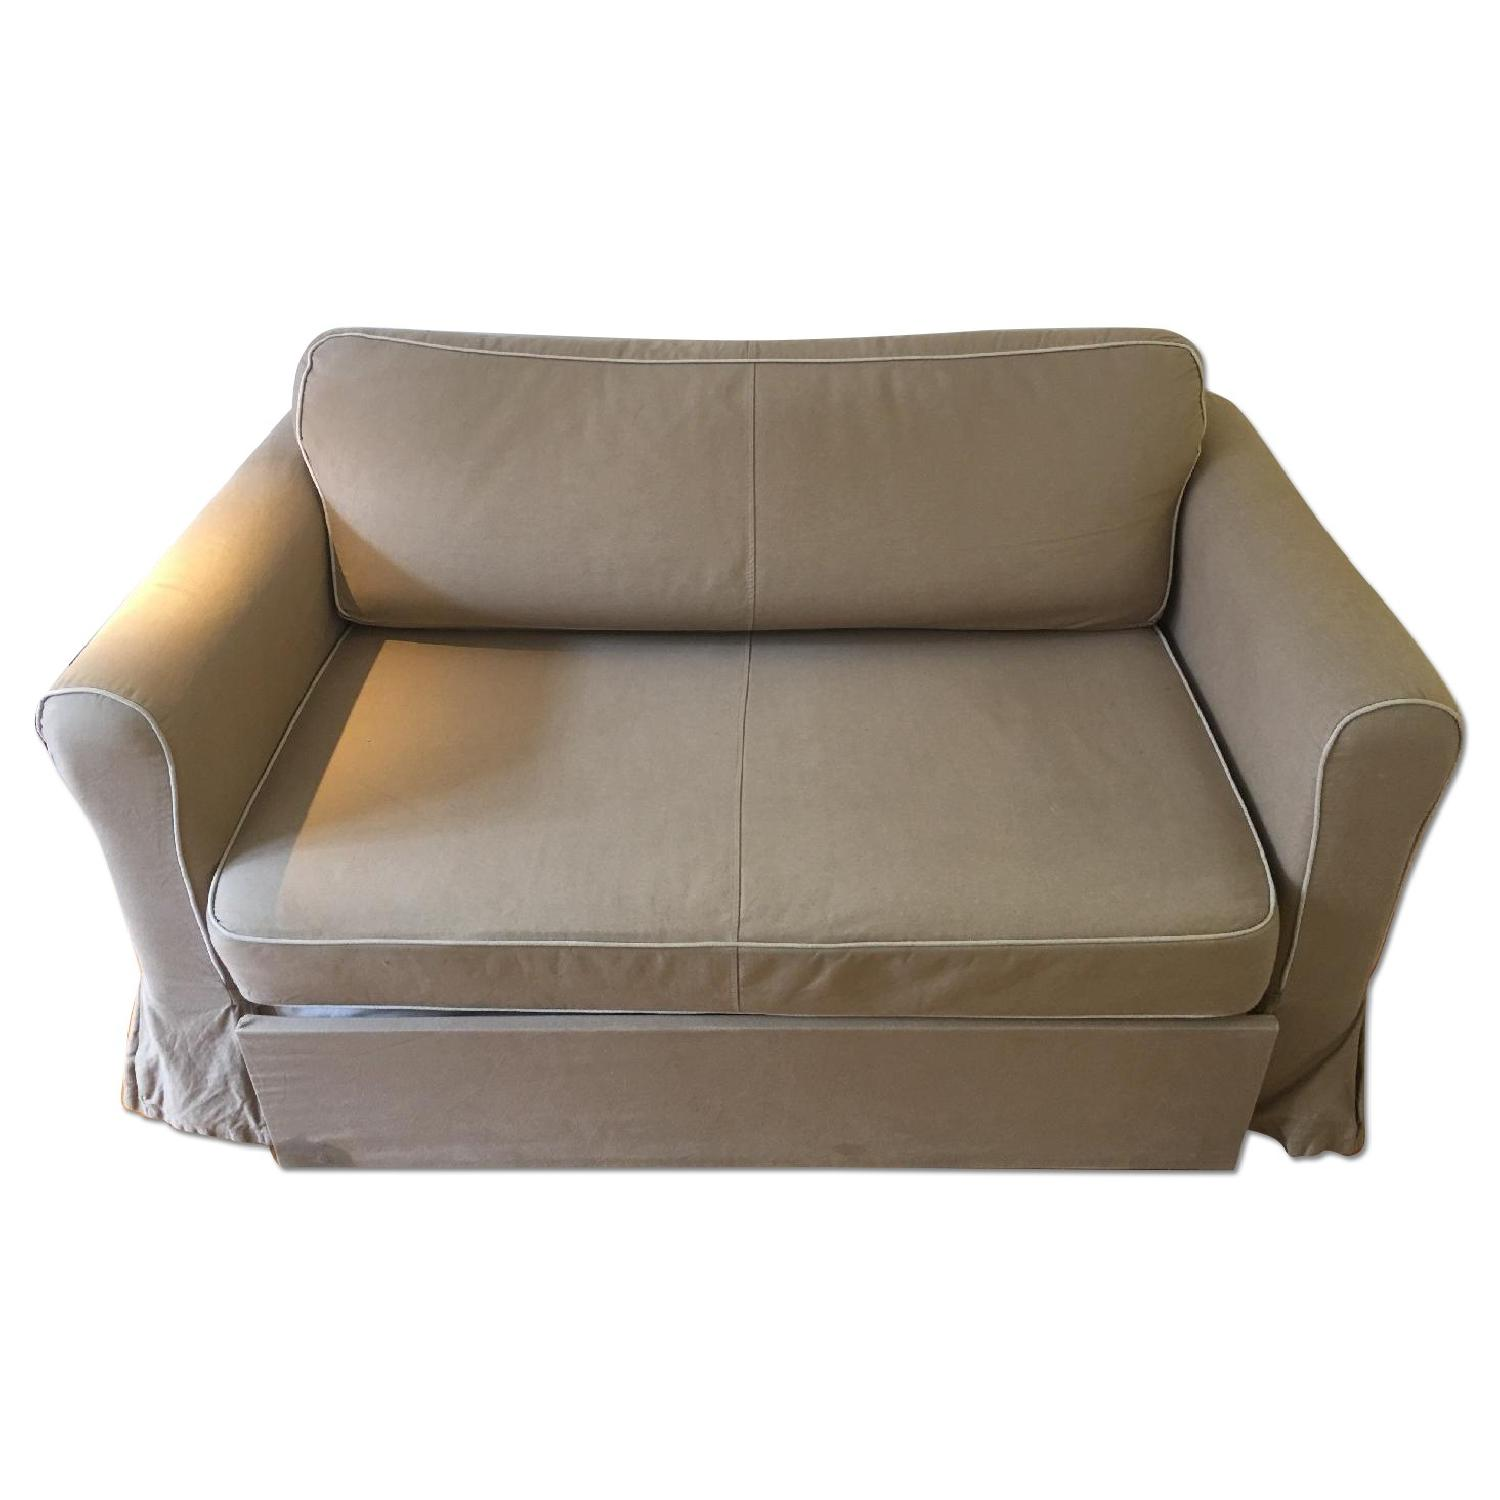 West Elm Beige Fold-Out Couch - image-0